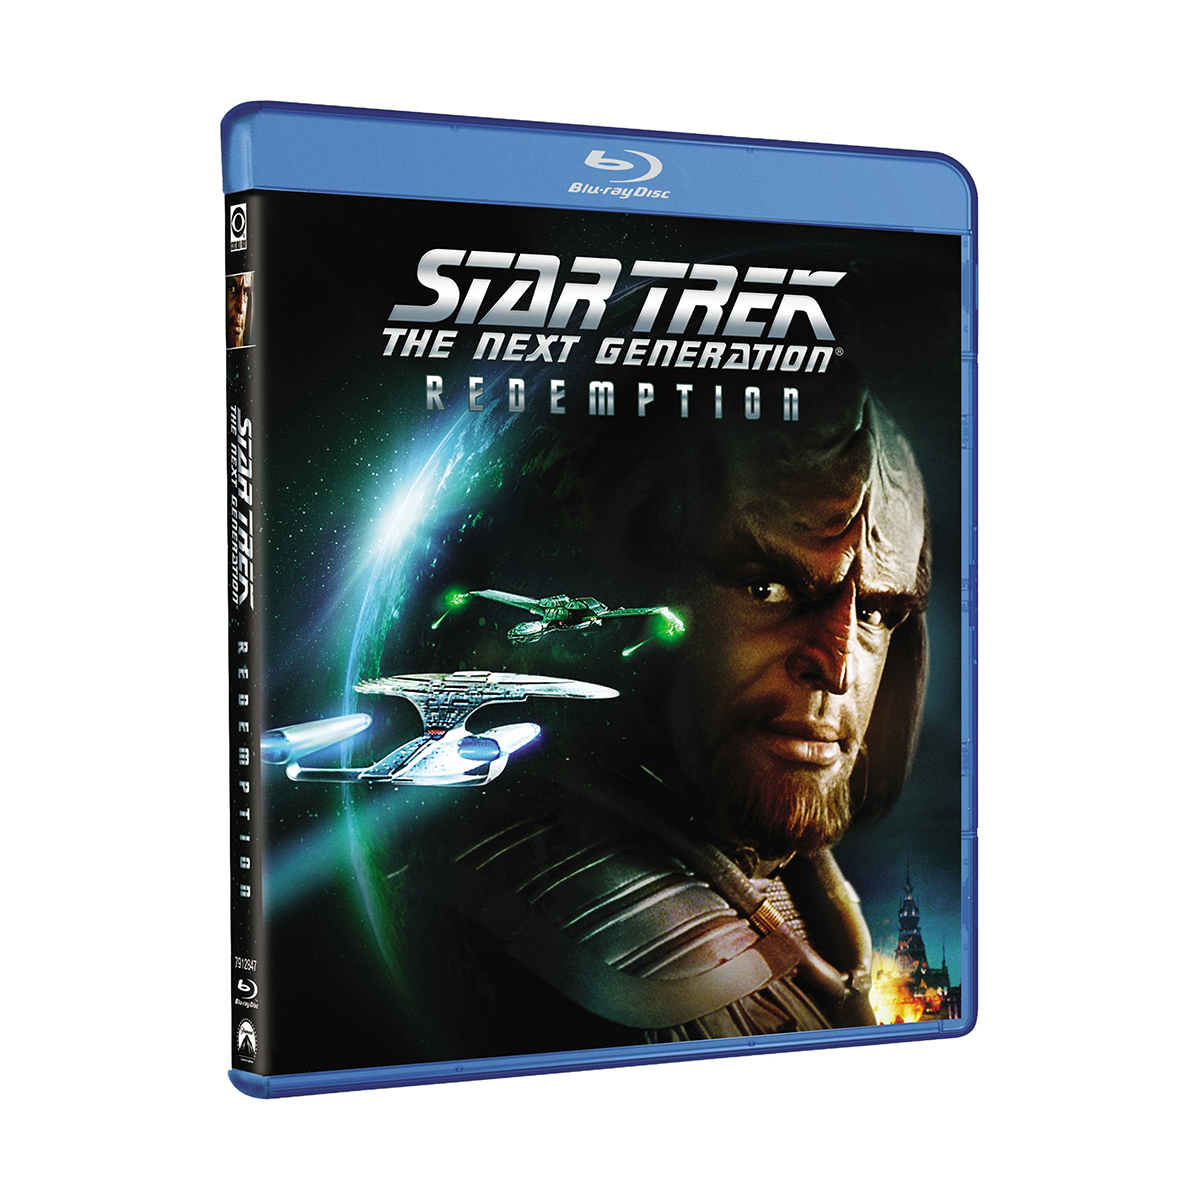 Star Trek: The Next Generation - Redemption Blu-ray